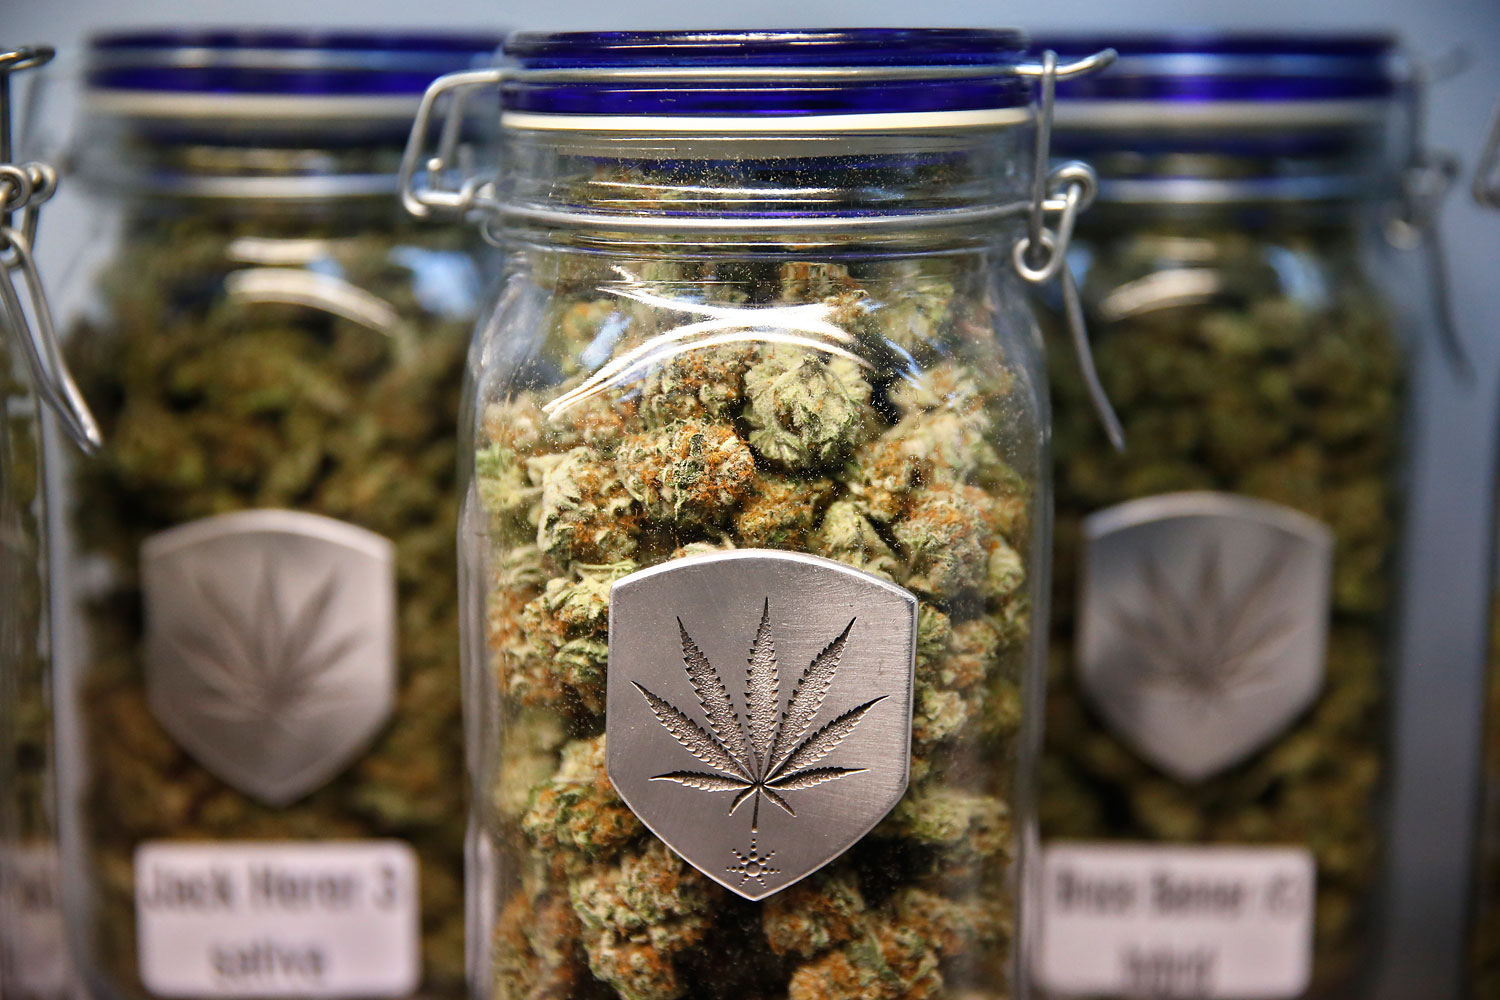 Different strains of pot are displayed for sale at Medicine Man marijuana dispensary in Denver on Dec. 27, 2013.